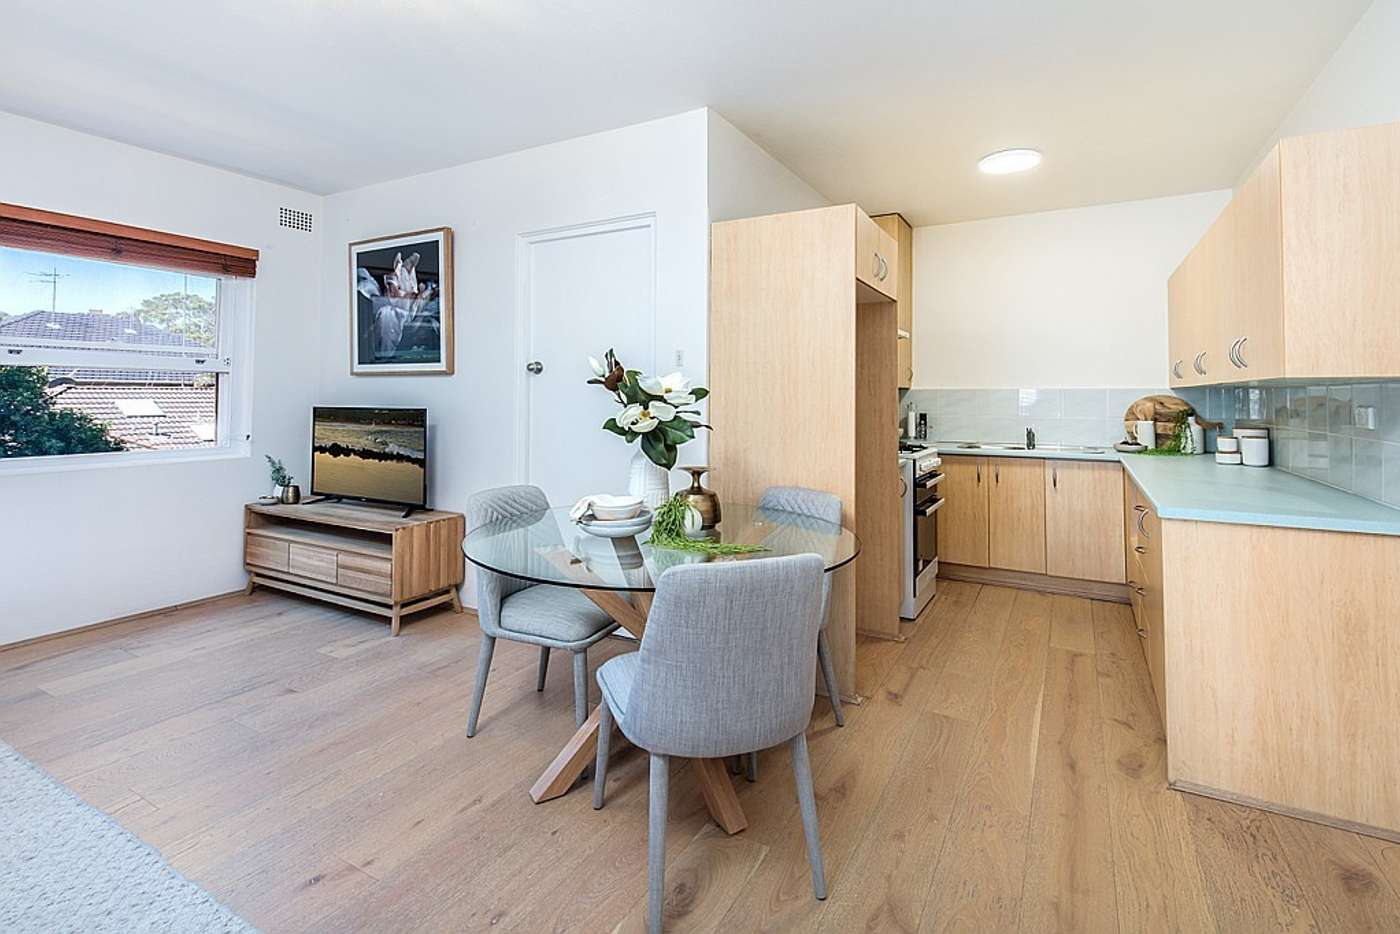 Sixth view of Homely apartment listing, 11/323 Alfred Street, Neutral Bay NSW 2089